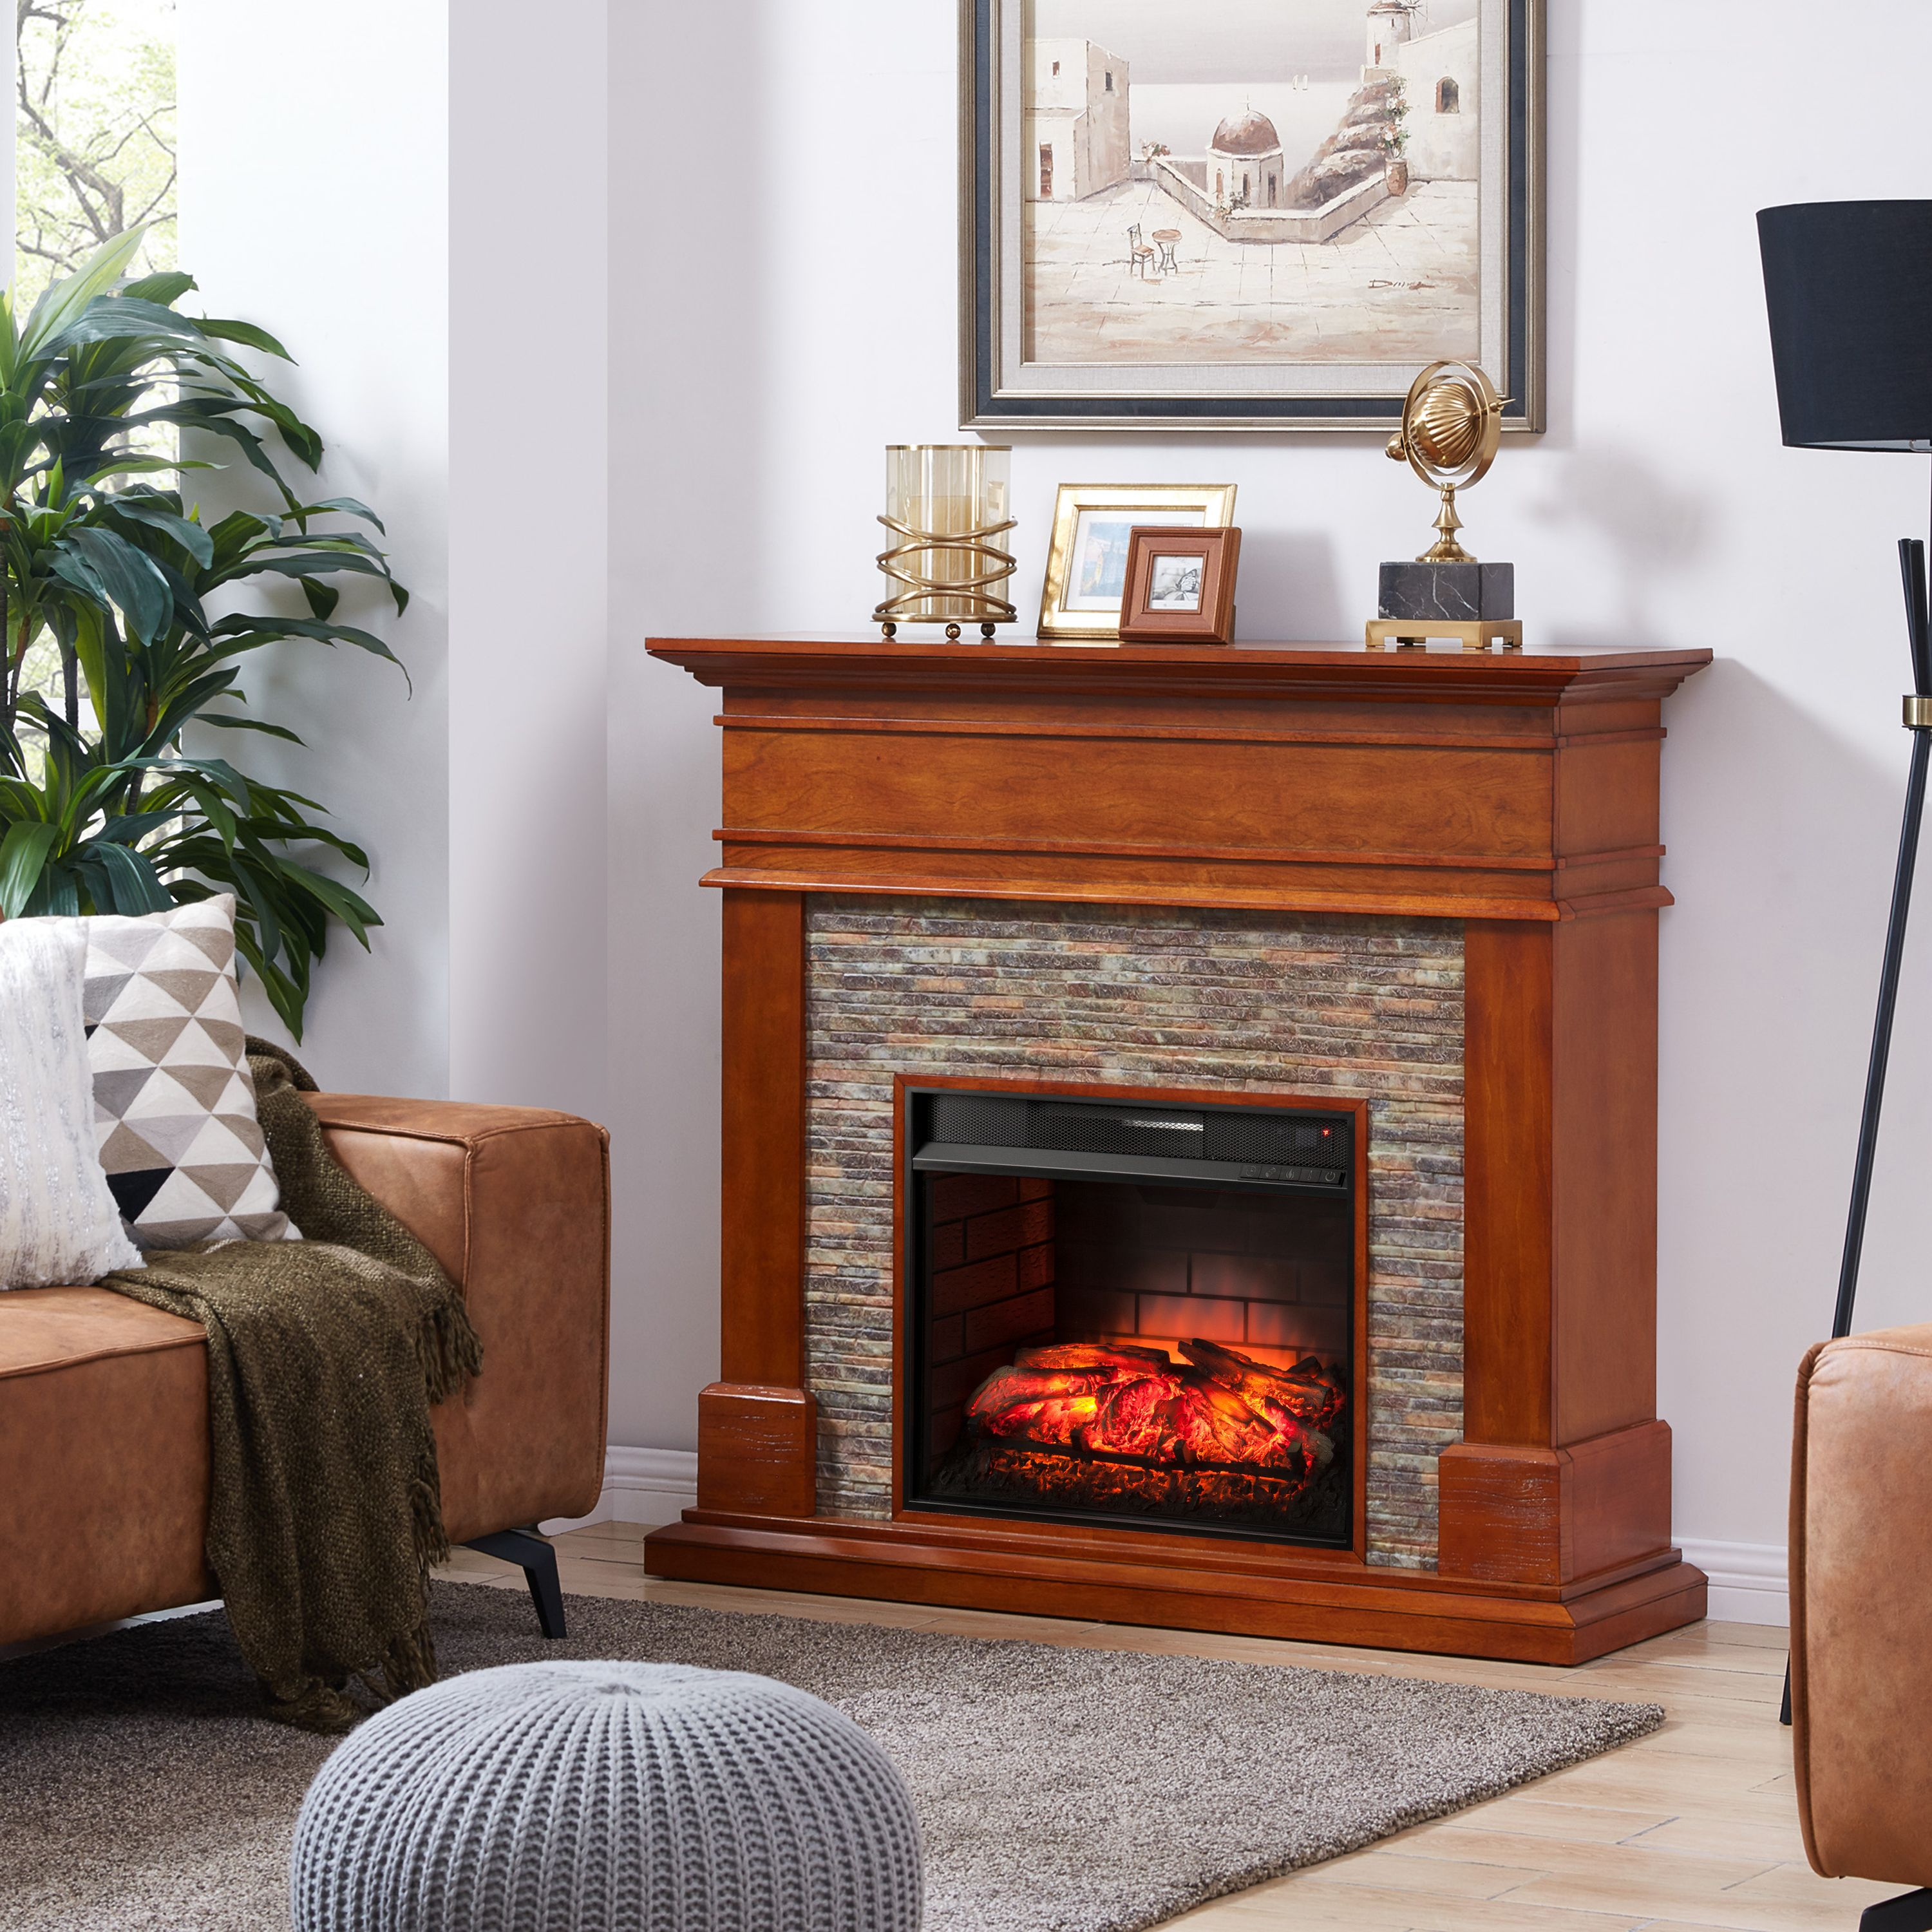 Kolman Faux Stone Infrared Fireplace, Traditional, Glazed Pine